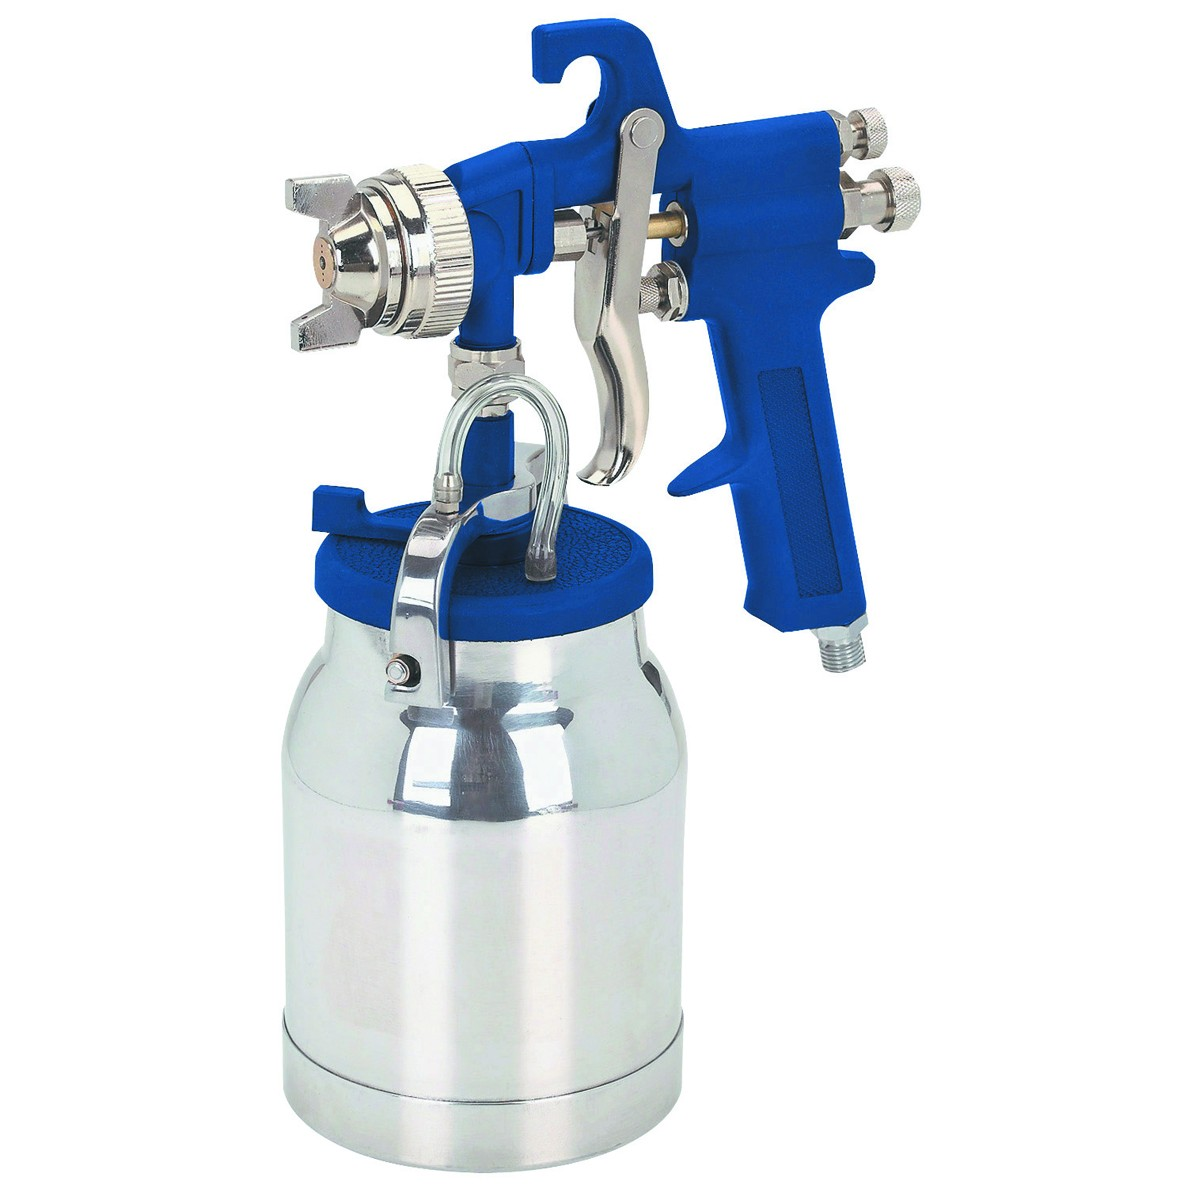 Different Types Of Spray Guns Available Online